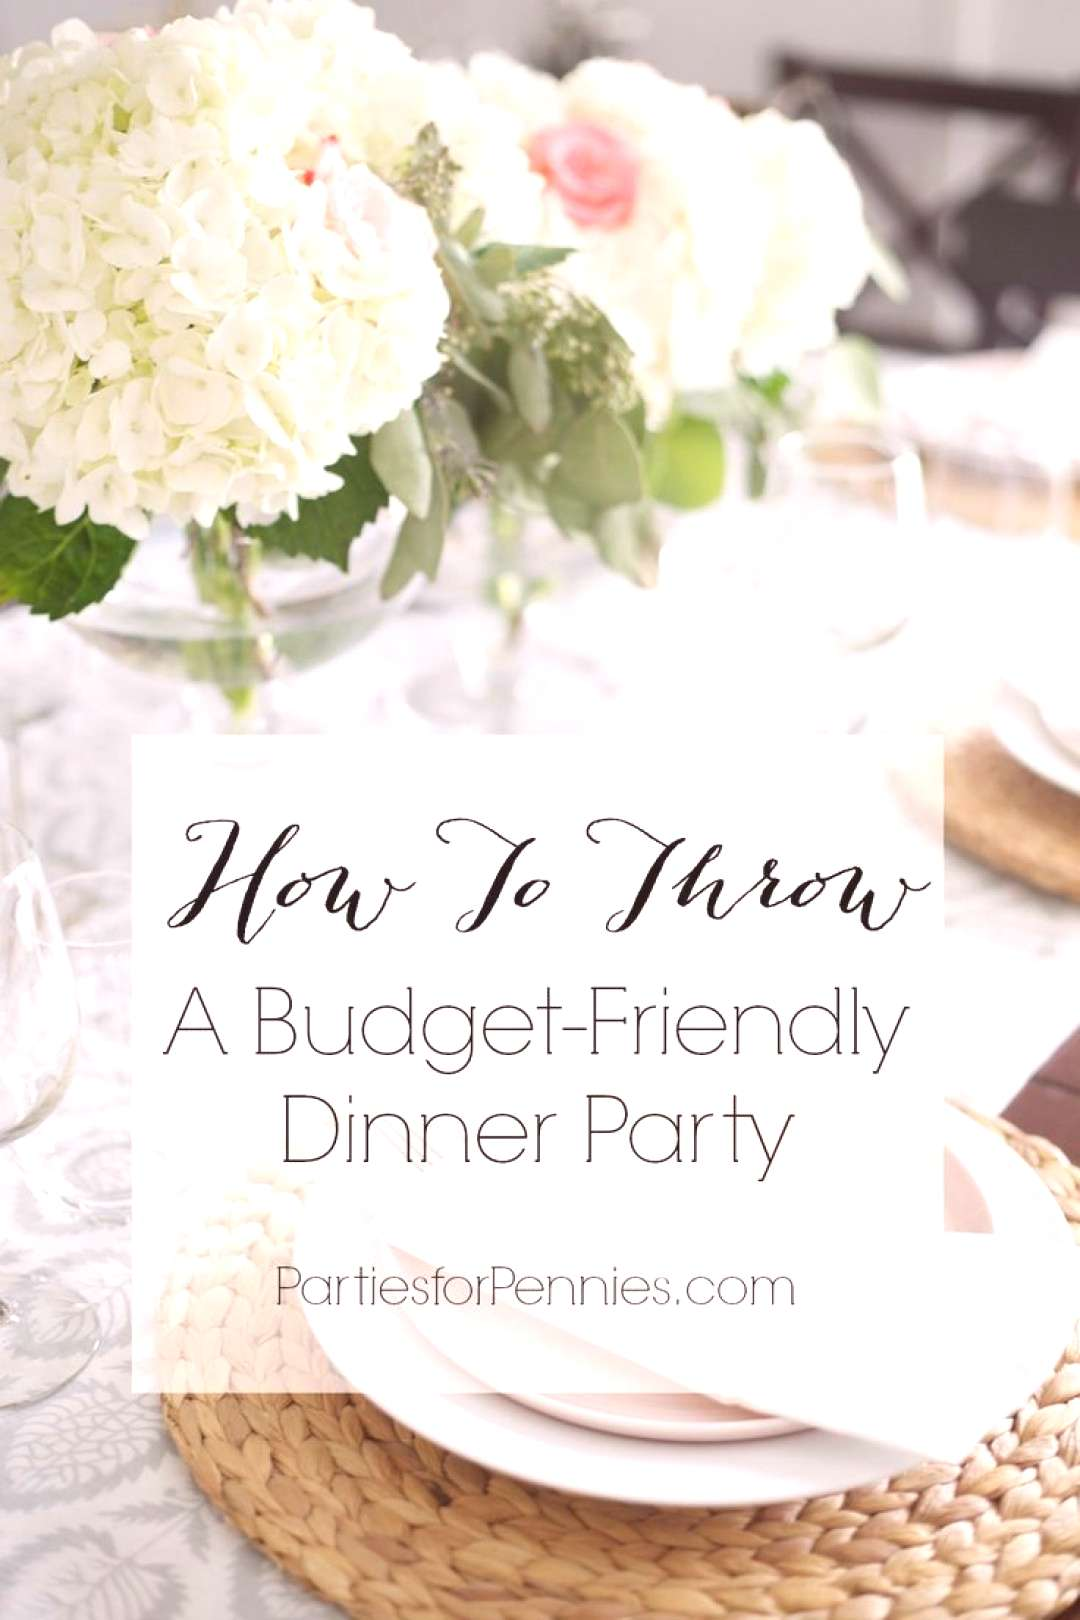 10 Budget Friendly Dinner Party Ideas - Parties for Pennies  10 Budget Friendly Dinner Party Ideas